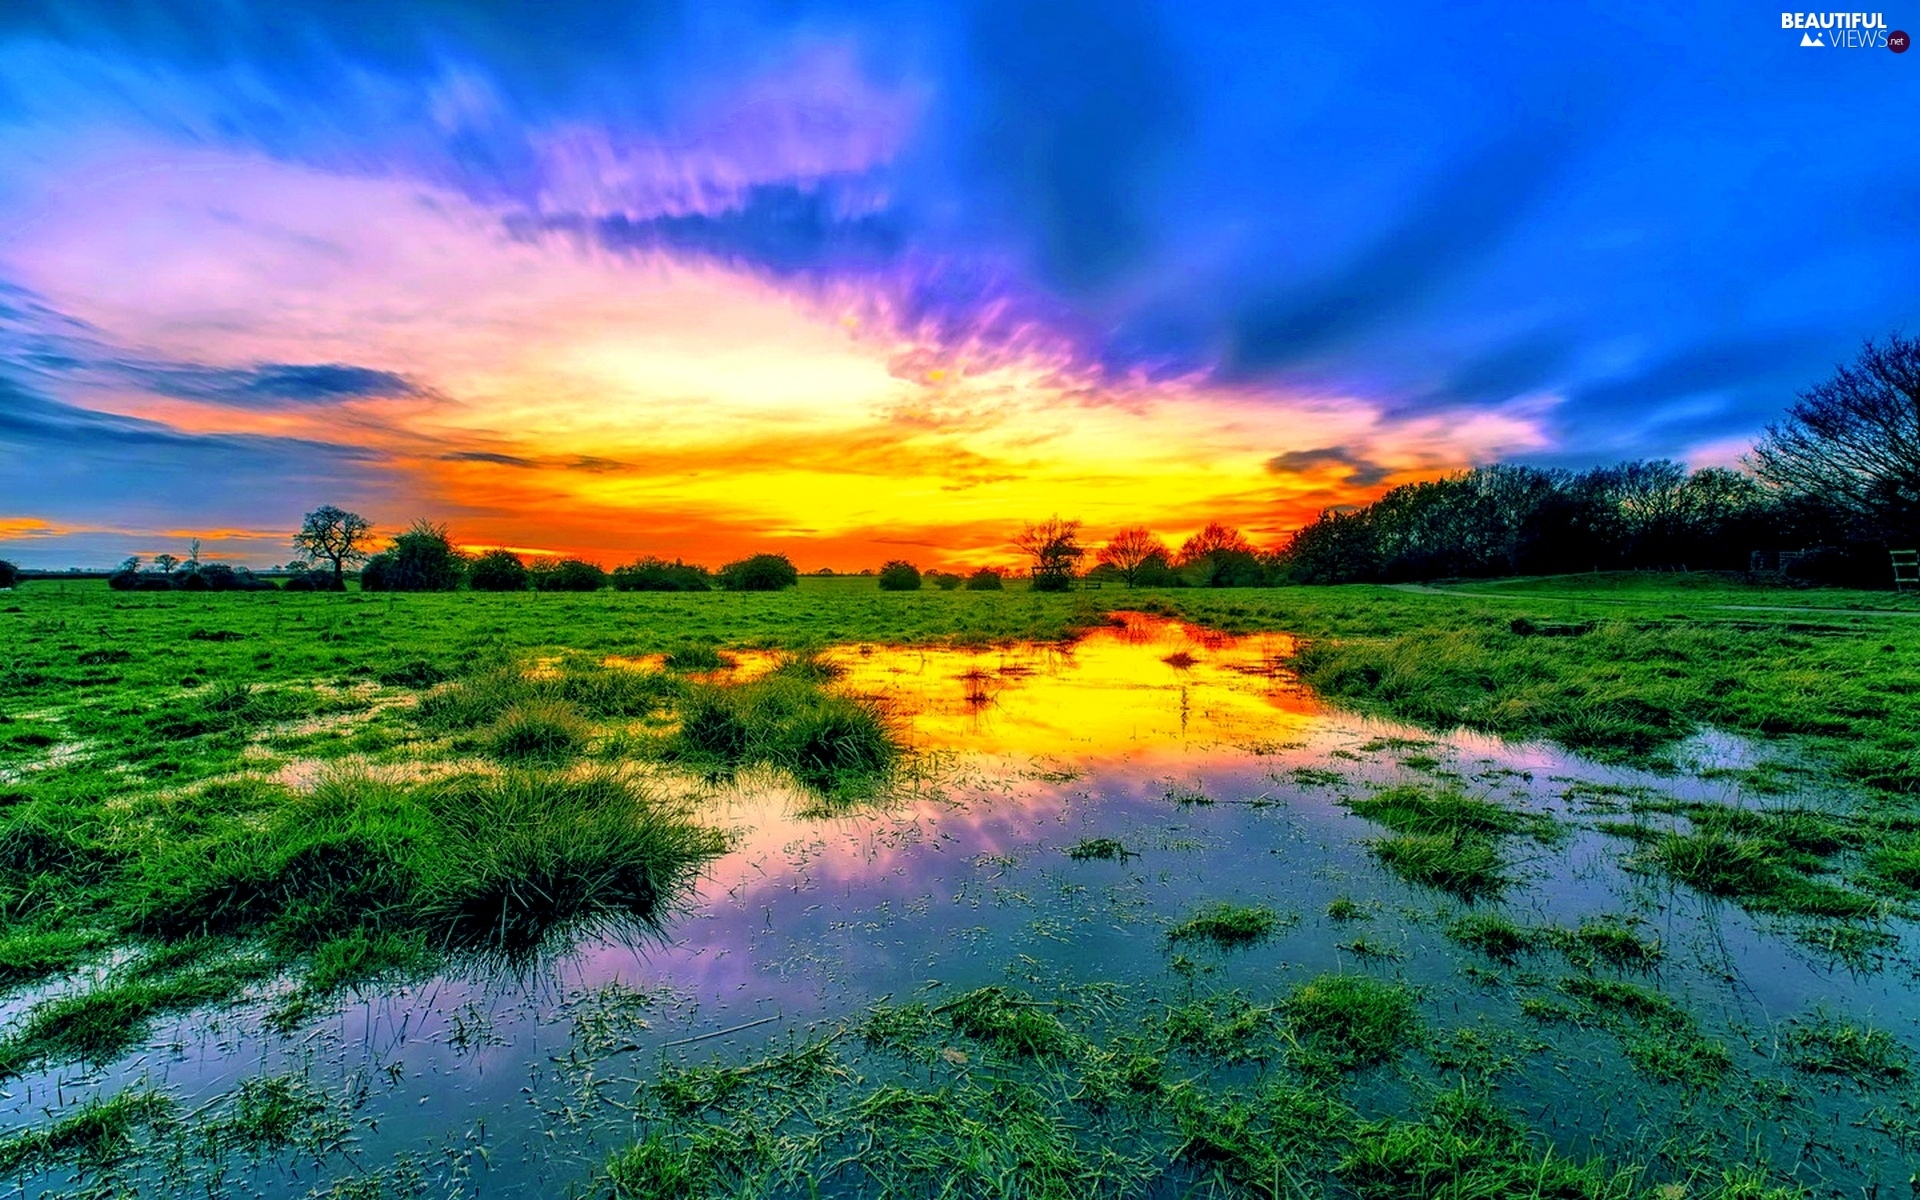 clouds, Meadow, trees, viewes, Great Sunsets, swamp